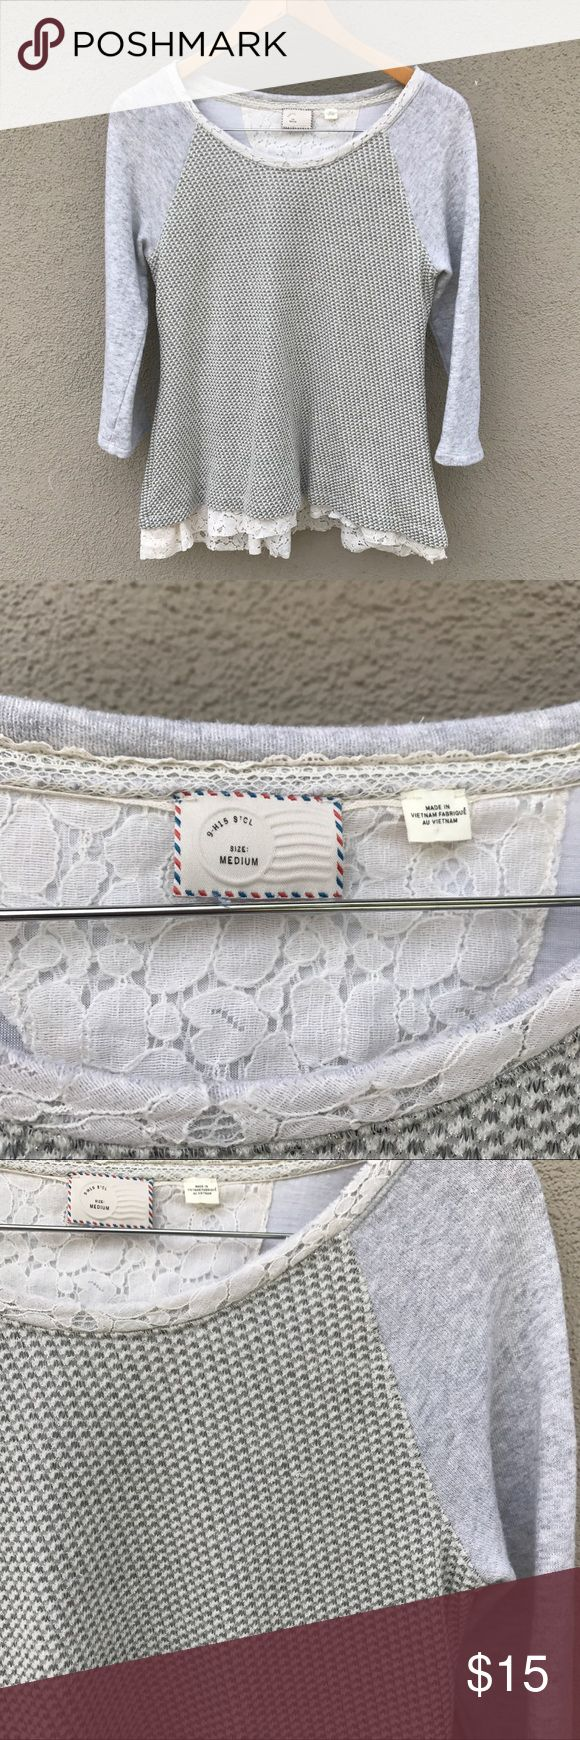 ✨ POSTMARK GRAY LACE RUFFLE TOP ✨ Lightweight gray long sleeve Postmark from Anthropologie  t-shirt! Beautiful patterned front and back with a shiny touch. Lace lined from and back with a little peplum back! Questions? Don't like the price? Offer away! Happy Poshing! :) Anthropologie Tops